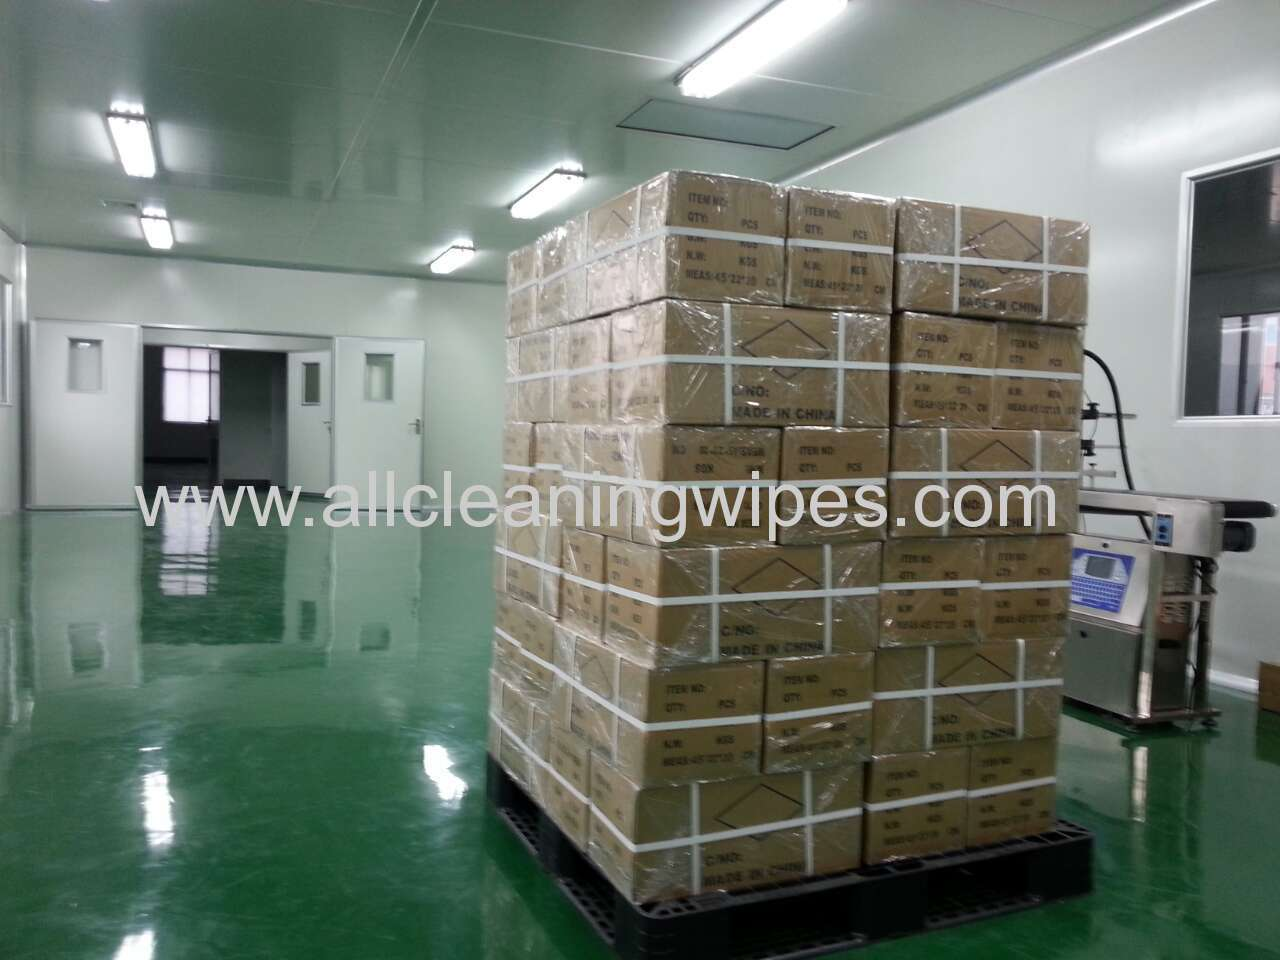 finsihed products warehouse